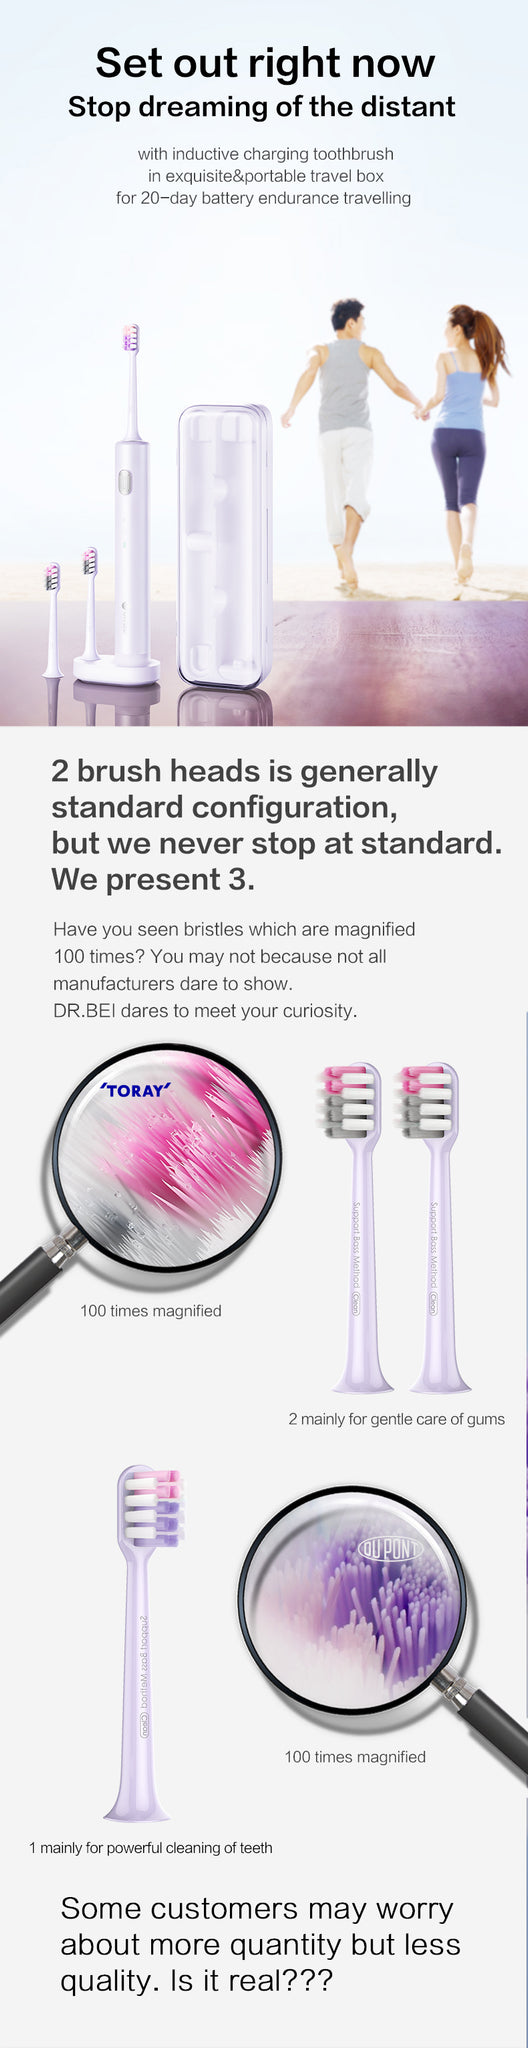 DR.BEI Violet Gold Sonic Electric Toothbrush BET-S01 Xiaomi Youpin DR.BEI BY-V12 Sonic Electric Toothbrush Portable 3 Models Soft Electric Tooth Brush IPX7 Rechargeable Adults Tooth Cleaner